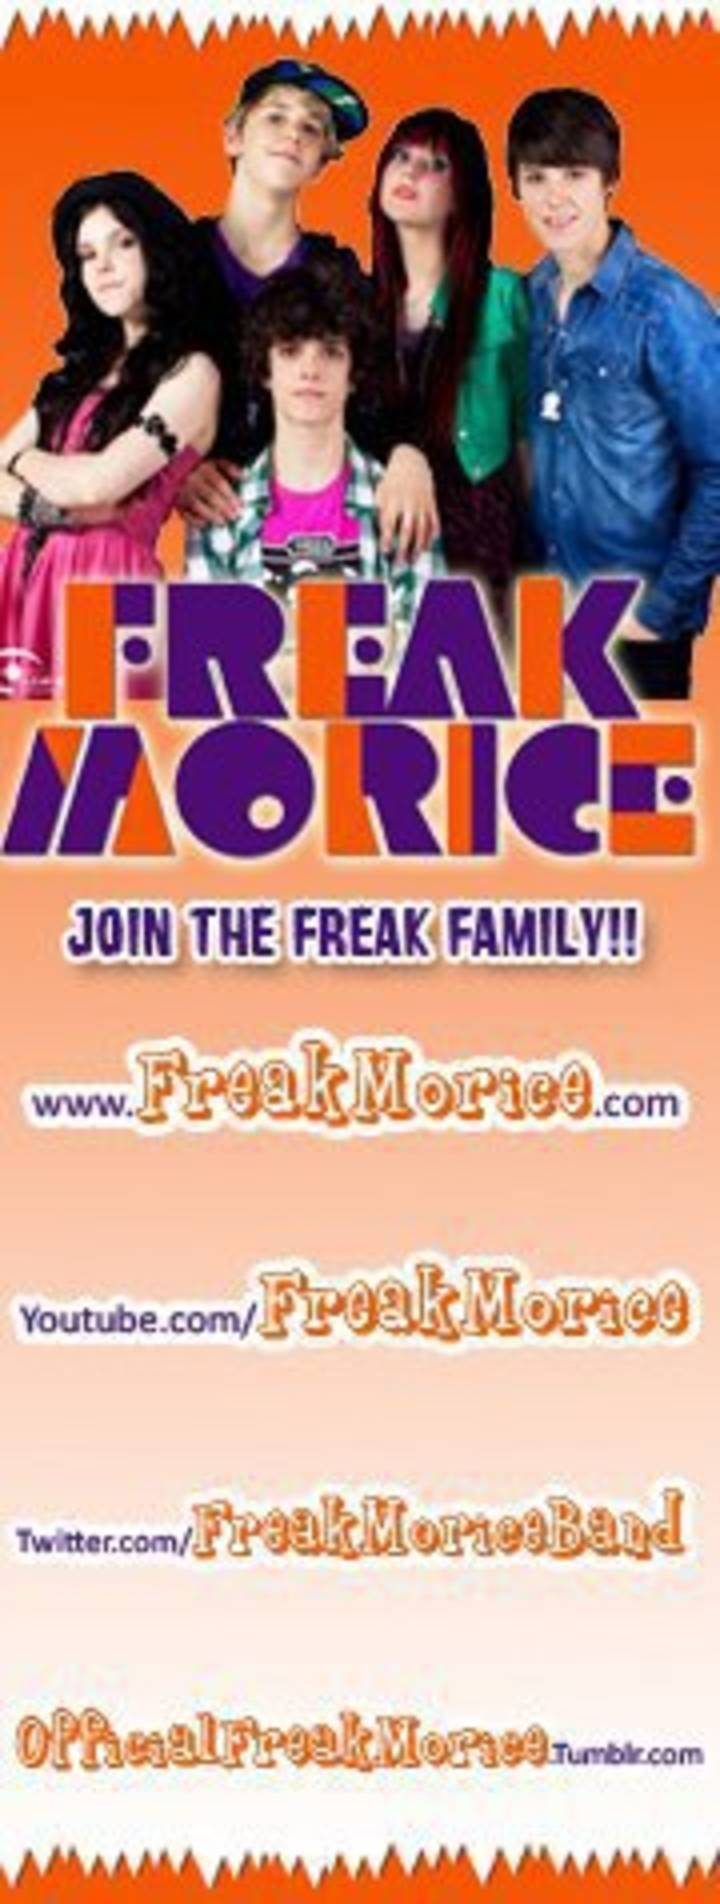 freak morice fan site Tour Dates